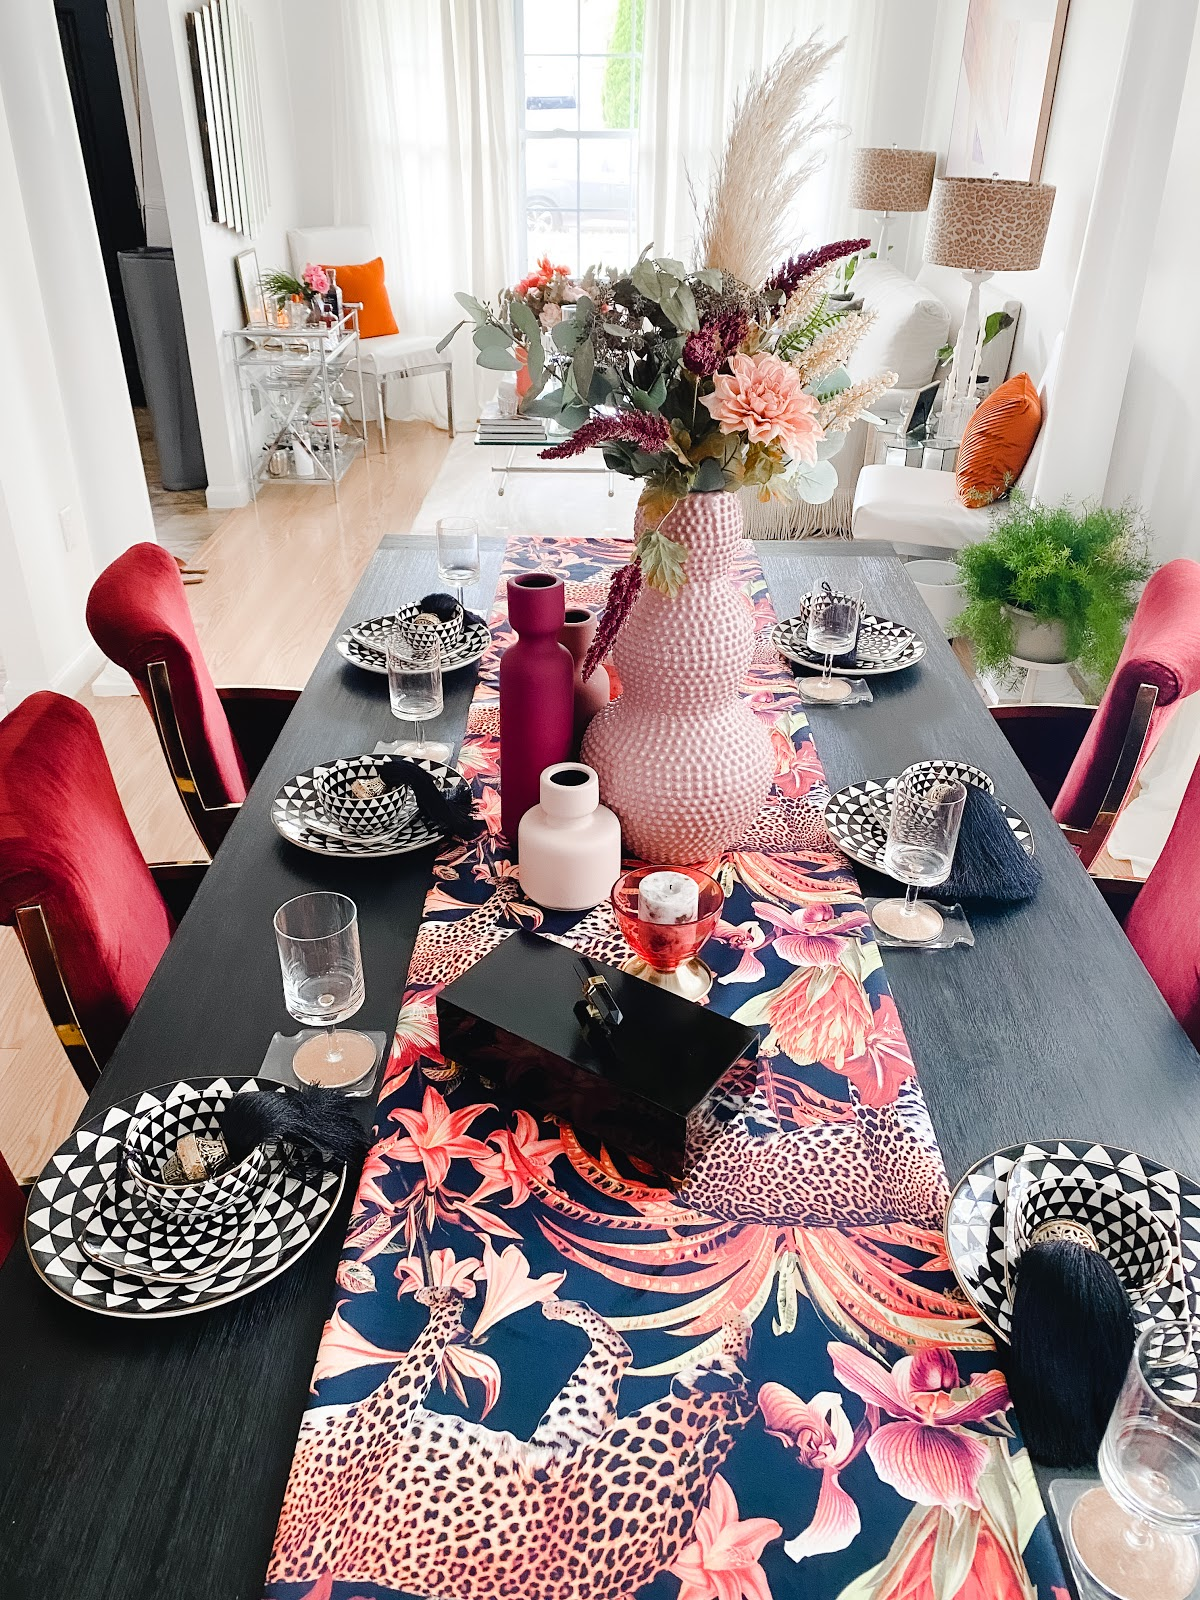 Top influencers share product picks and styling tips to help you transition your home from mundane and neutral to effortlessly glamorous.